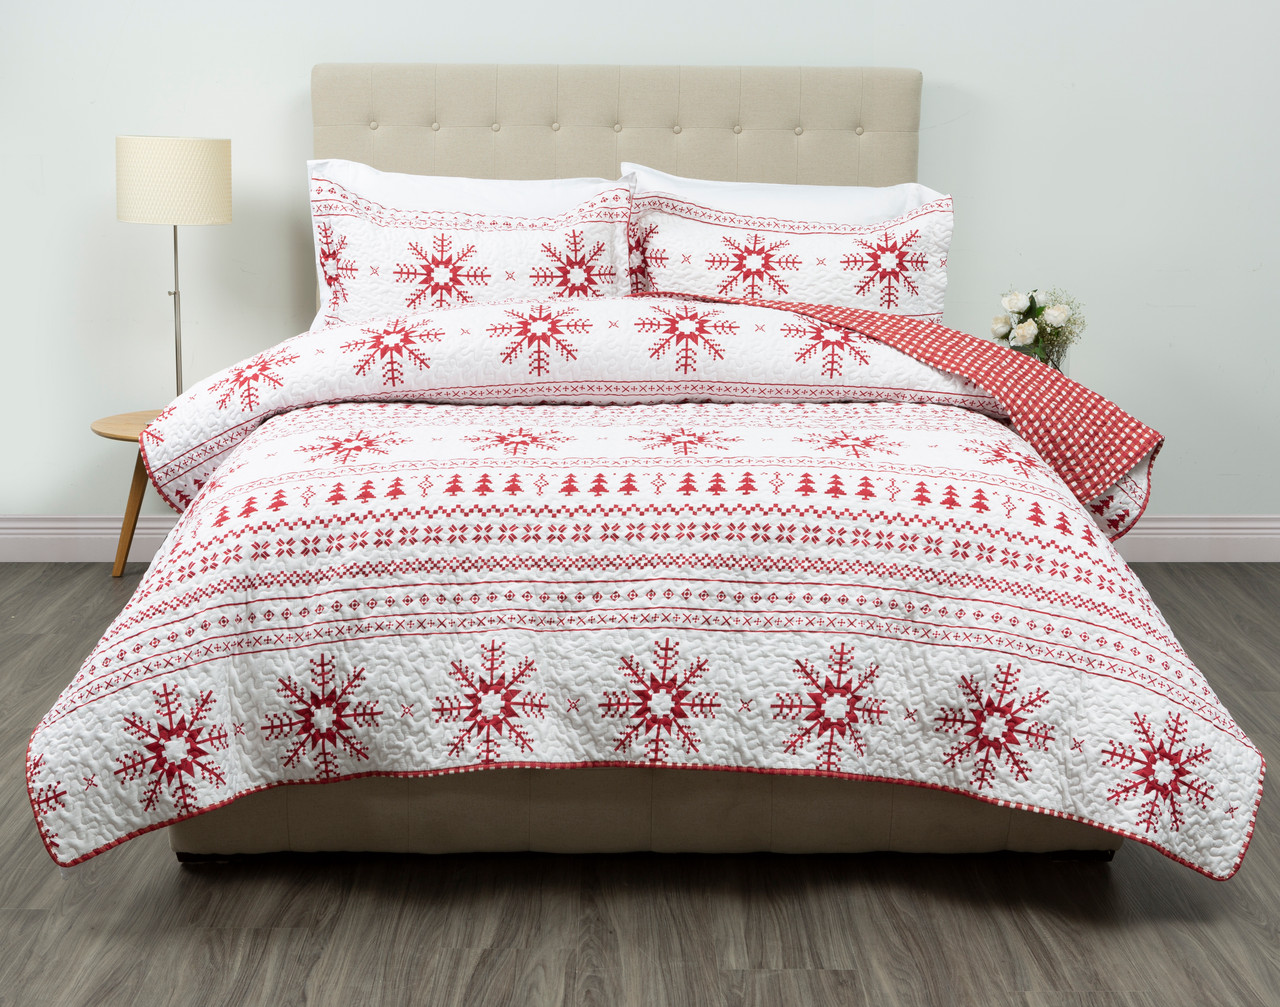 Yuletidings Coverlet Set, featuring red snowflakes and trees with a solid background in white.